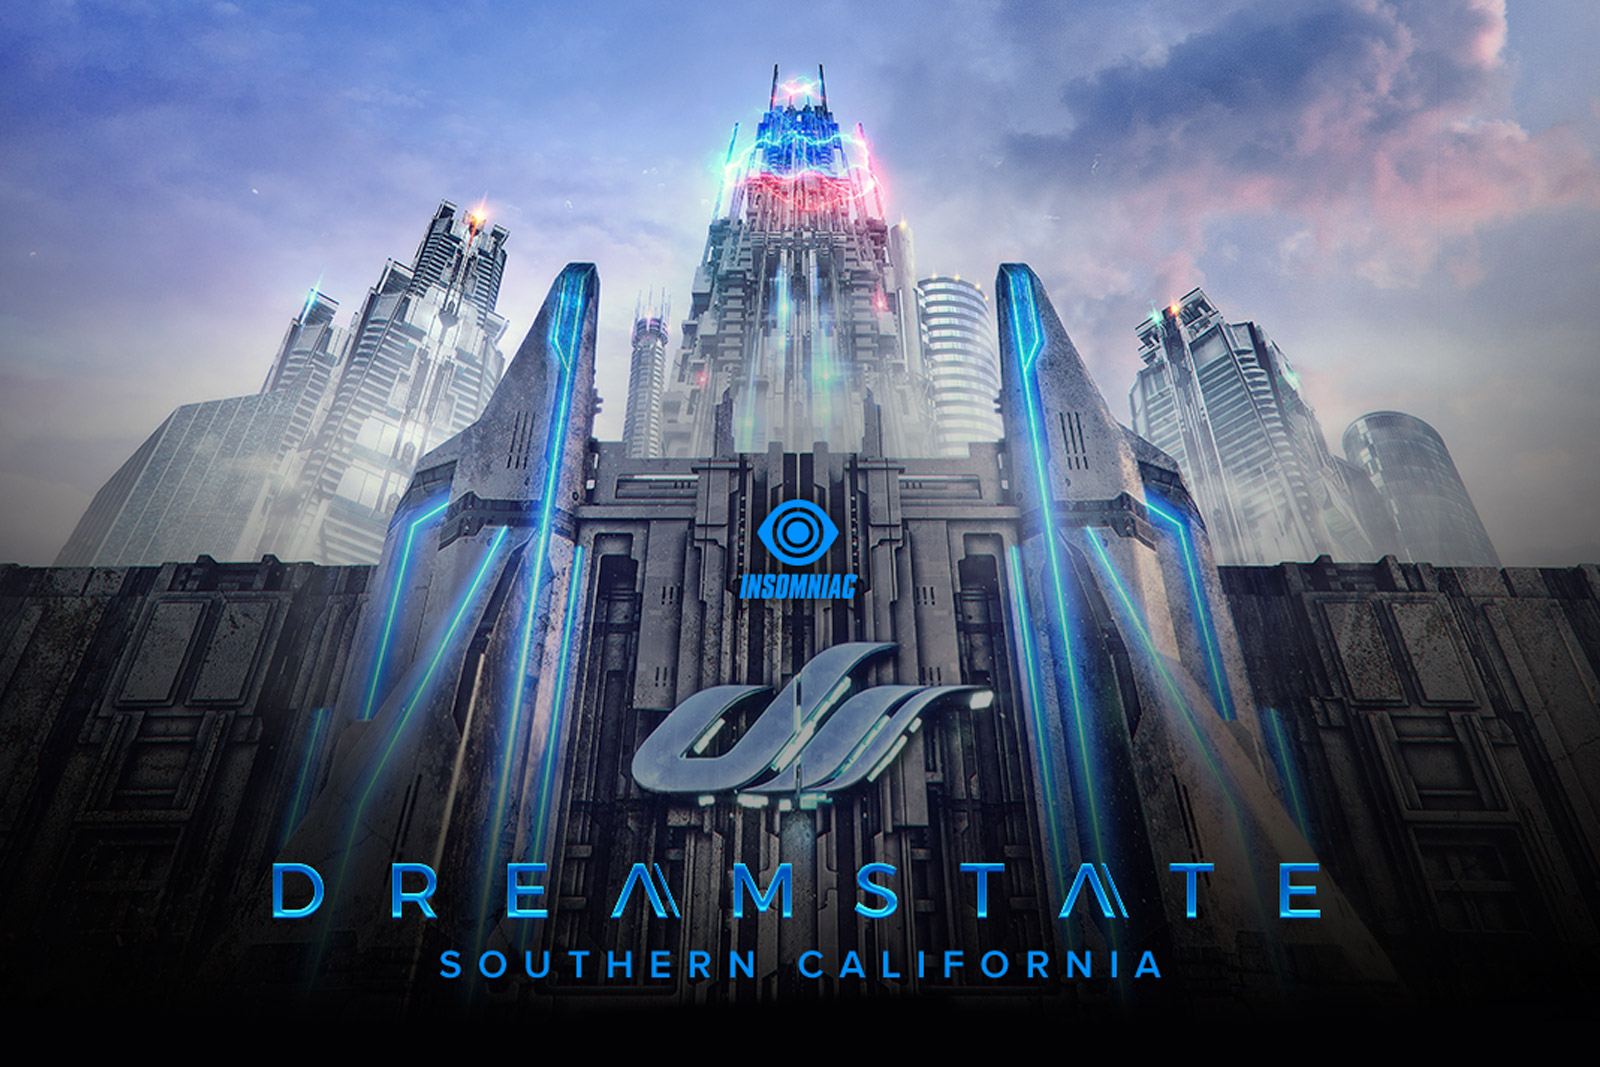 dreamstate-socal-2018-lineup-poster-oz-edm-feature